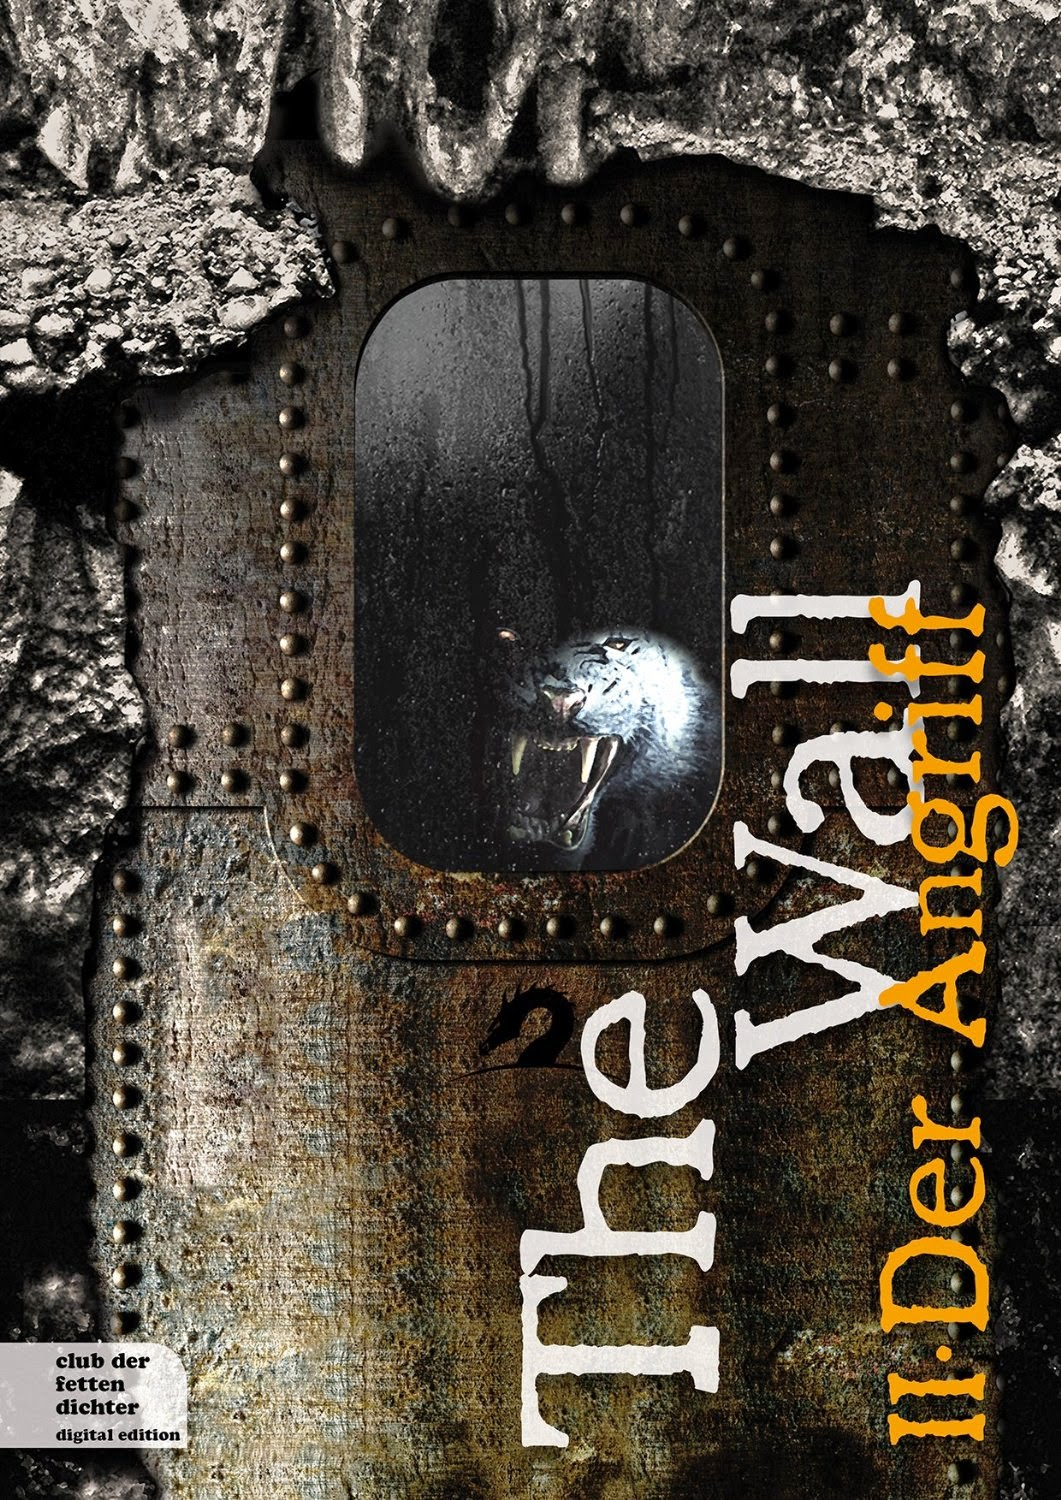 http://www.amazon.de/The-Wall-Teil-Der-Angriff-ebook/dp/B00OI8081G/ref=pd_sim_kinc_4?ie=UTF8&refRID=04DYX8CDNBVP5NQX57VW